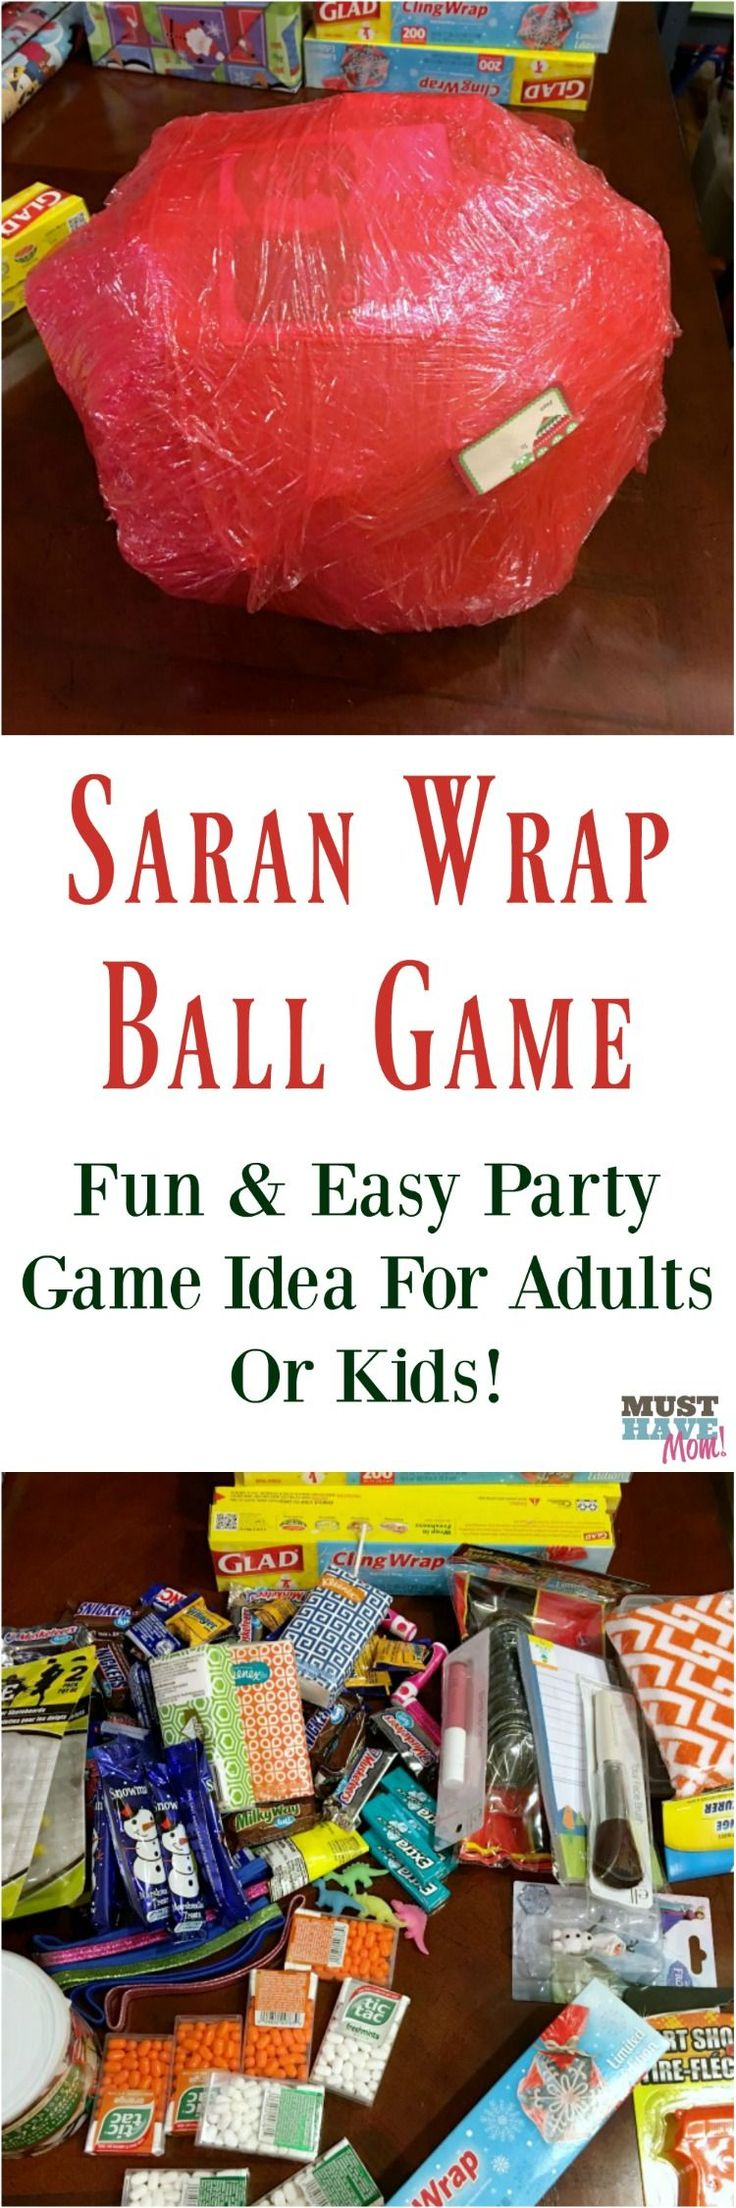 Best 25+ Christmas games for women ideas on Pinterest | Family christmas  party games, Christmas party games for adults and Office xmas party games